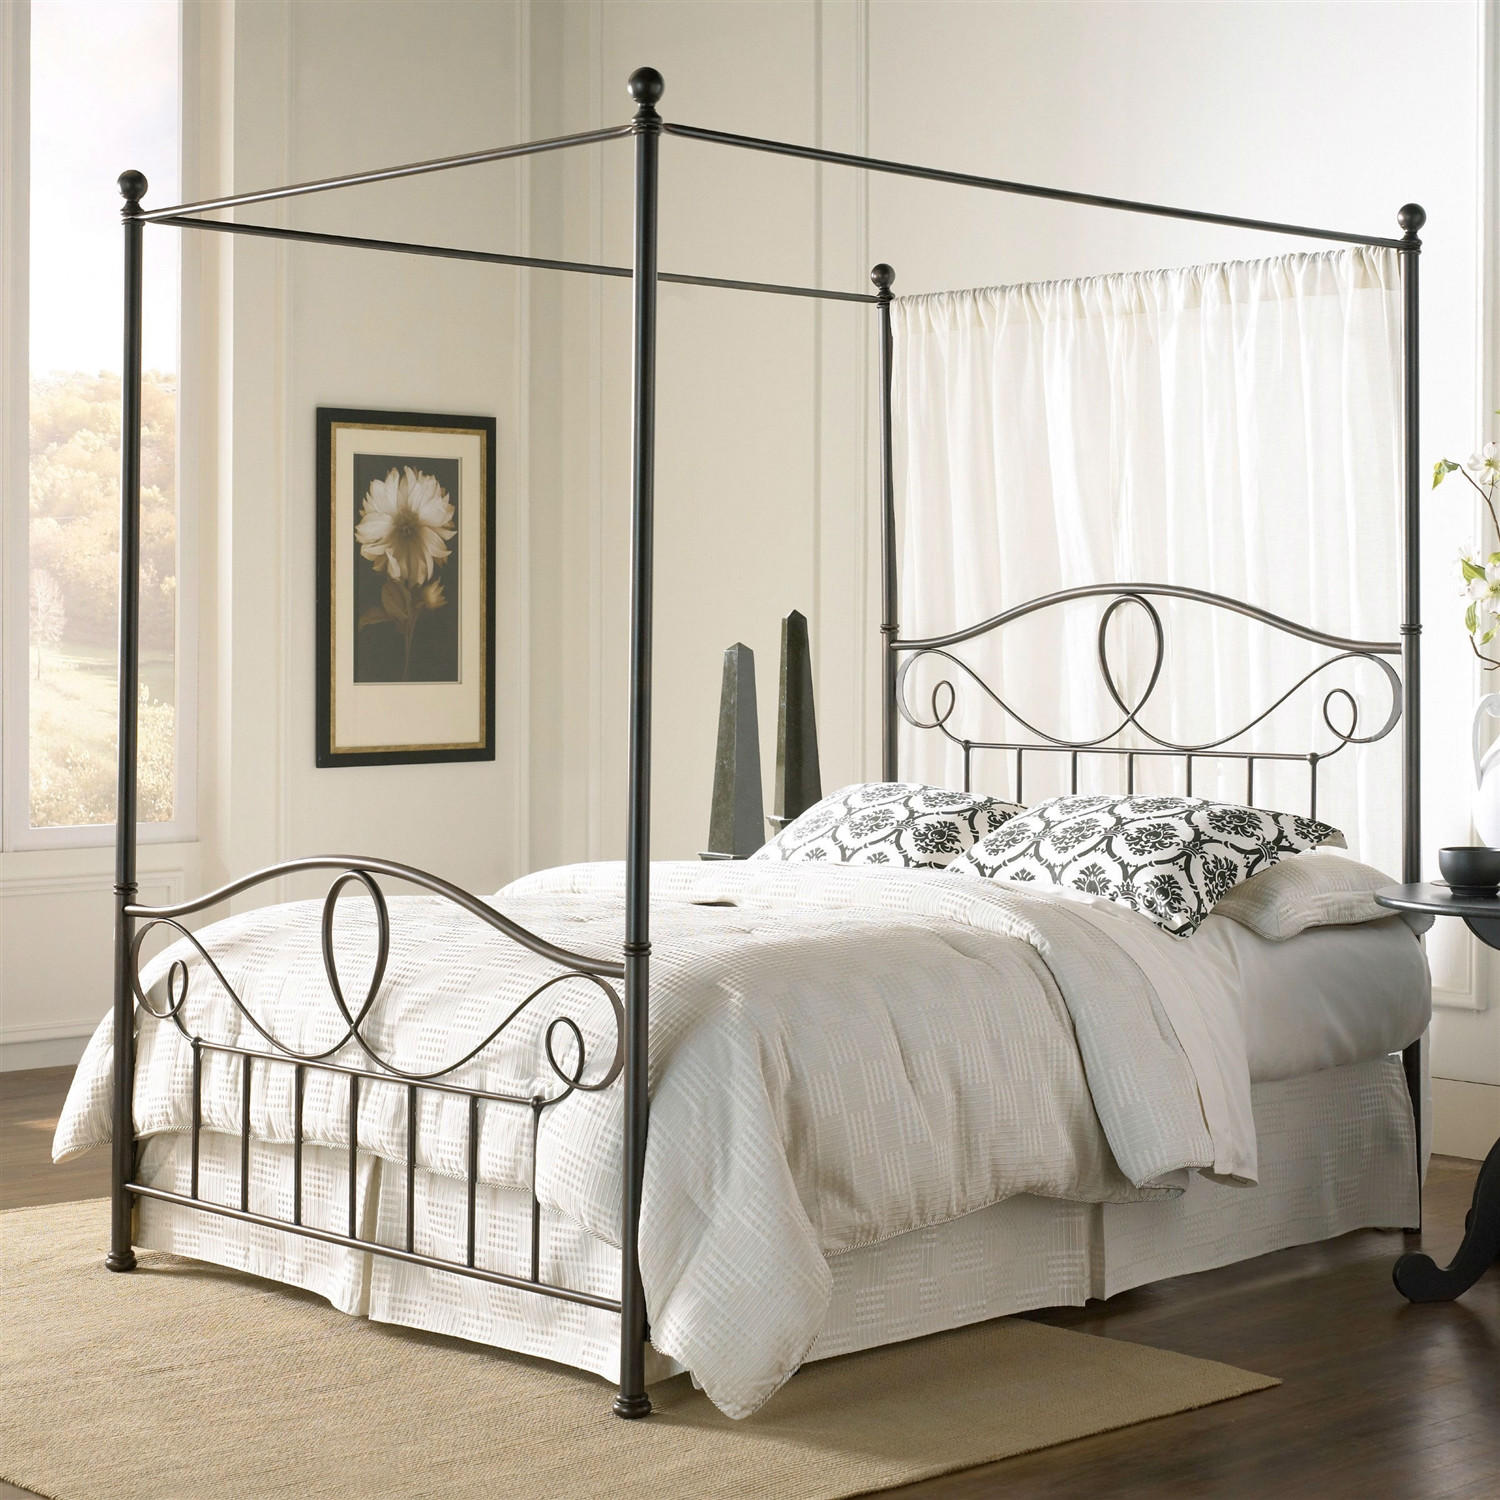 Queen Size Complete Metal Canopy Bed In From Hearts Attic